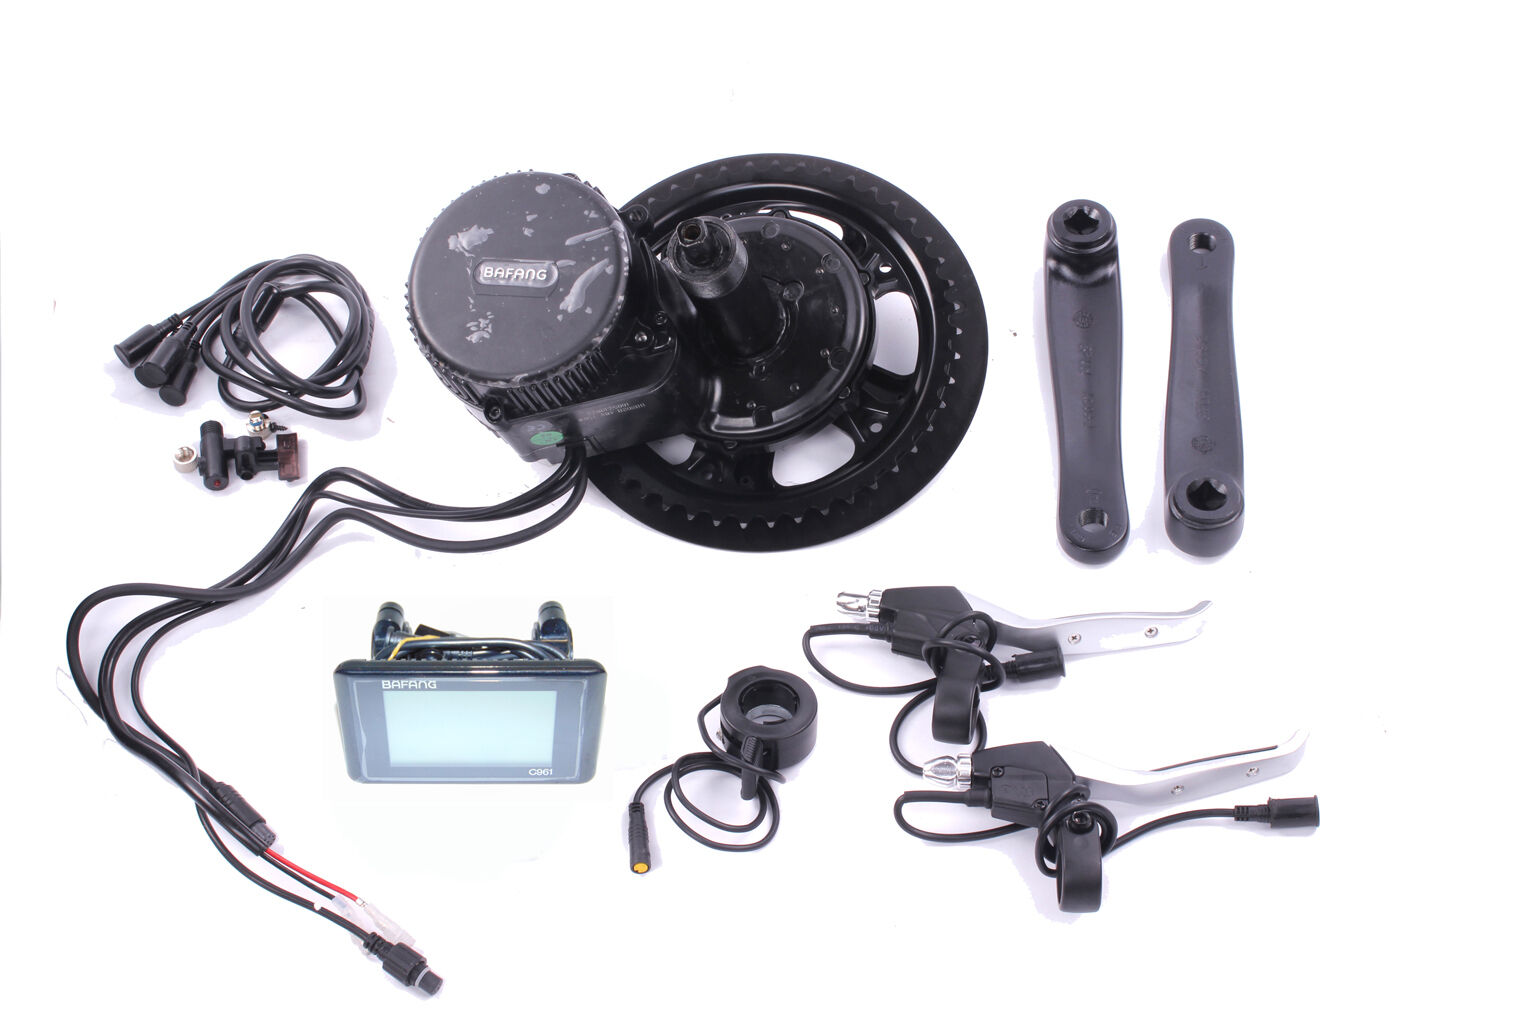 E-Bike Umbau Kit BAFANG G340 BBS01 36V  350W Mittelmotor Umrüstsatz Display C961  welcome to buy